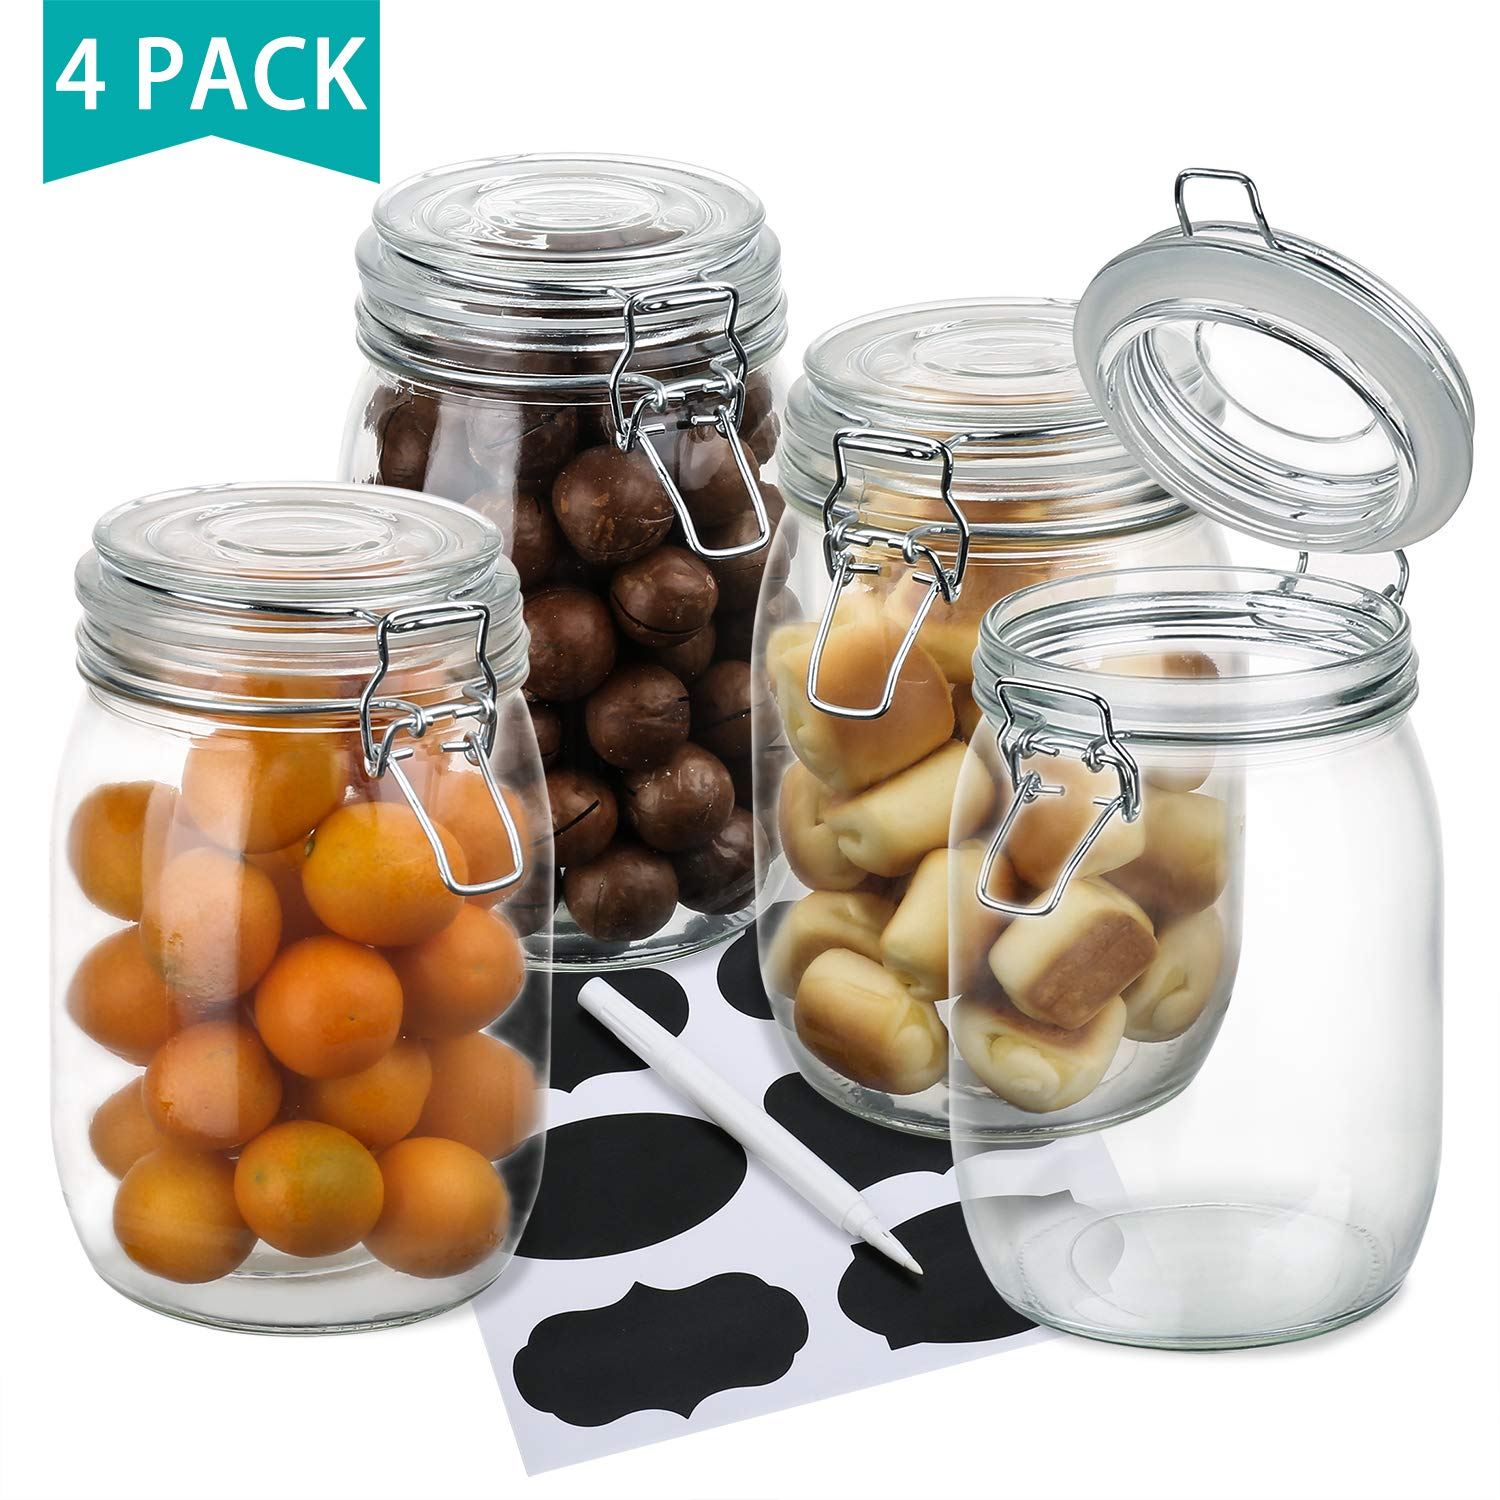 Wide Mouth Mason Jars, OAMCEG 4-Piece 1 L Airtight Glass Preserving Jars with Leak Proof Rubber Gasket and Clip Top Lids, Perfect for Storing Coffee, Sugar, Flour or Sweets - 8 Labels & 1 Chalk Marker